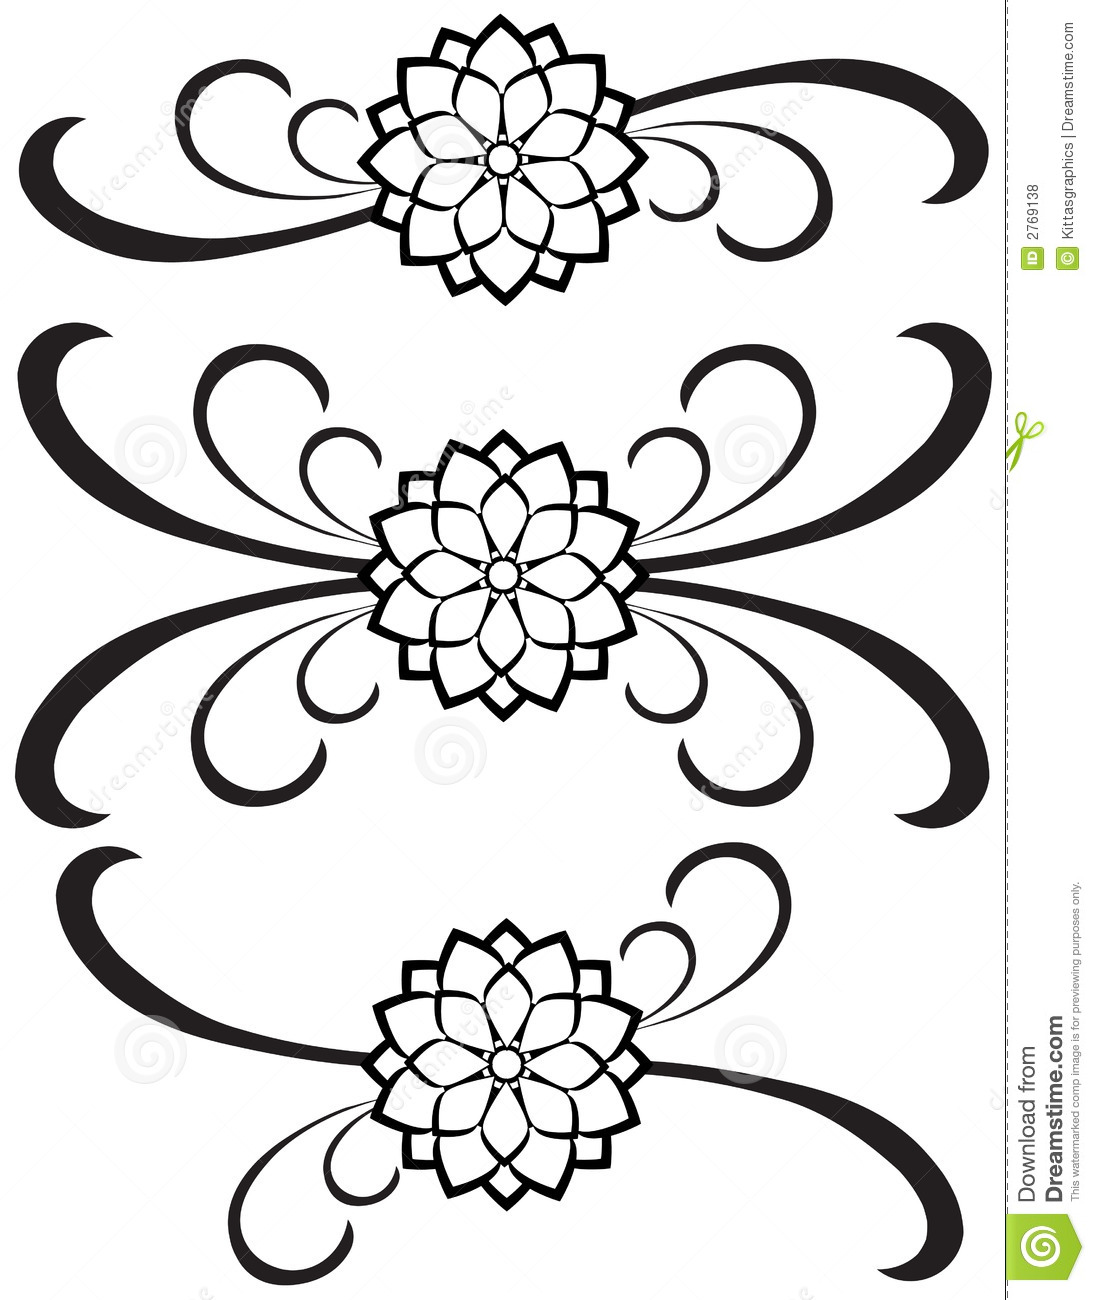 Fancy Detailed Decorations 77 Stock Vector   Illustration of